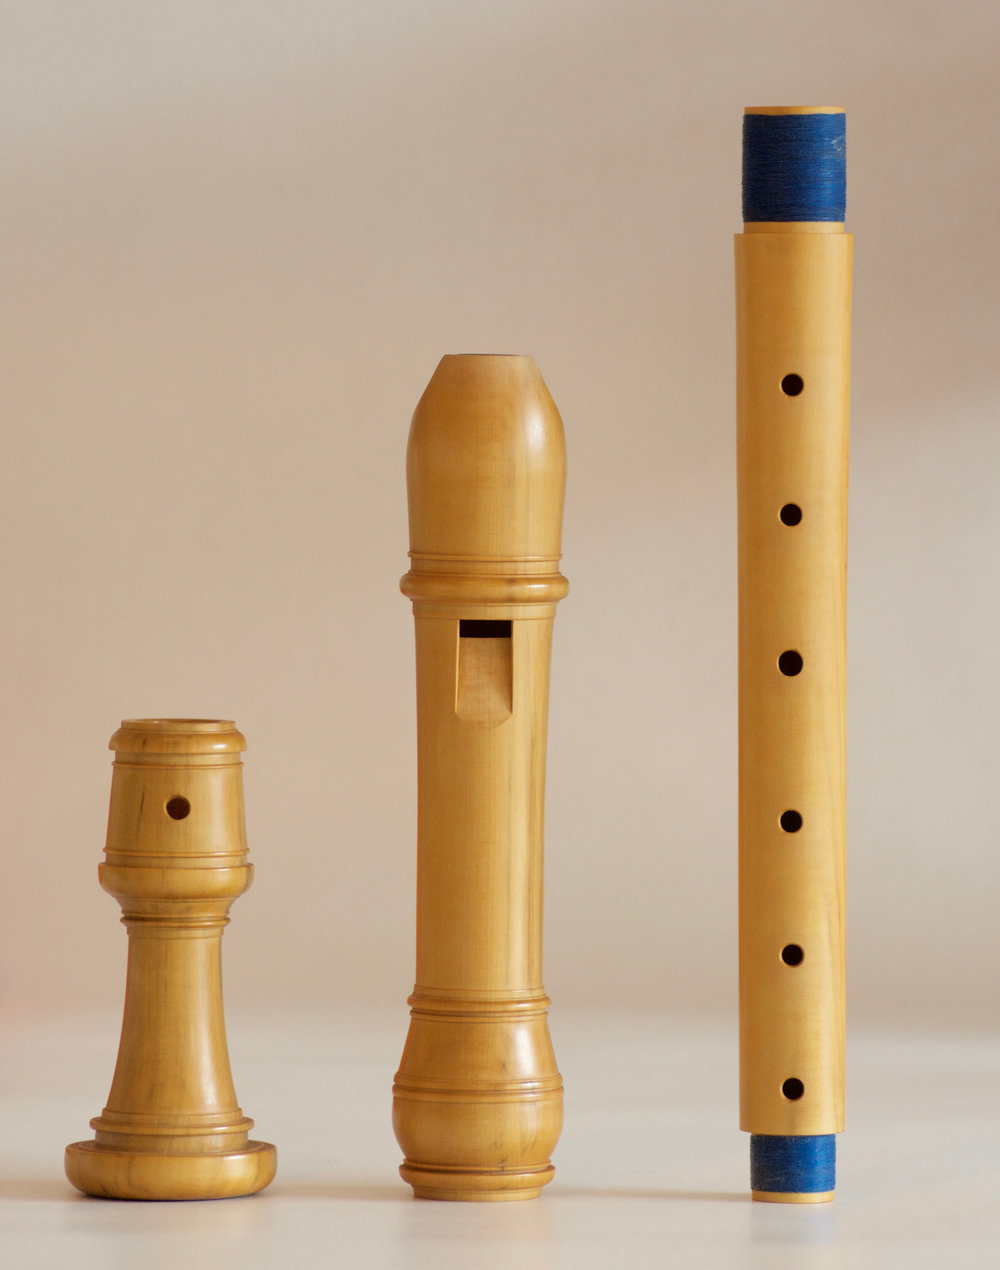 Treble recorder after Thomas Stanesby Senior by Marco Magalhães